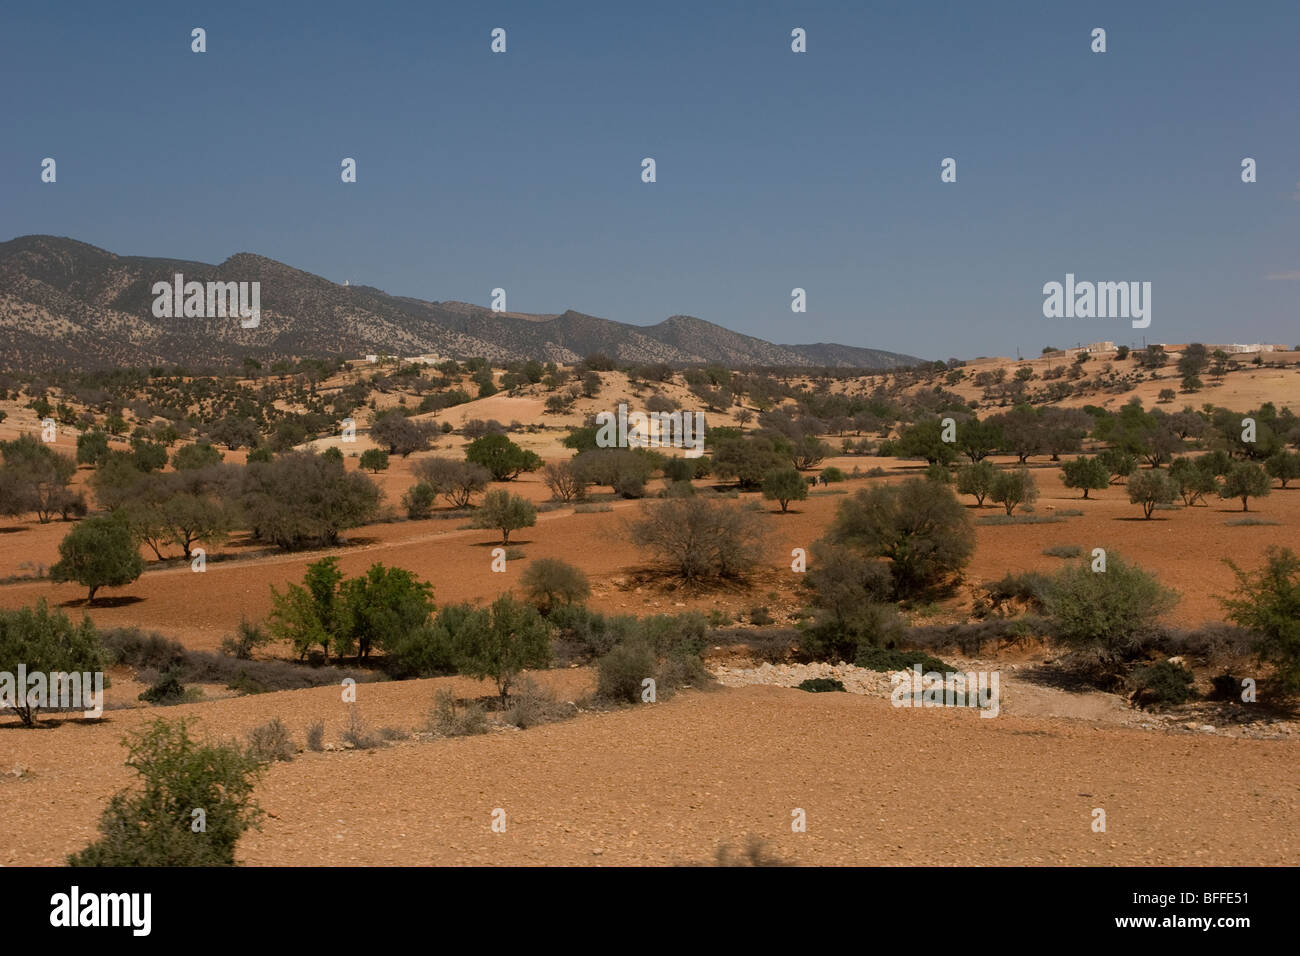 A semi-arid stretch of land between Taroudannt and Agadir in Morocco. - Stock Image